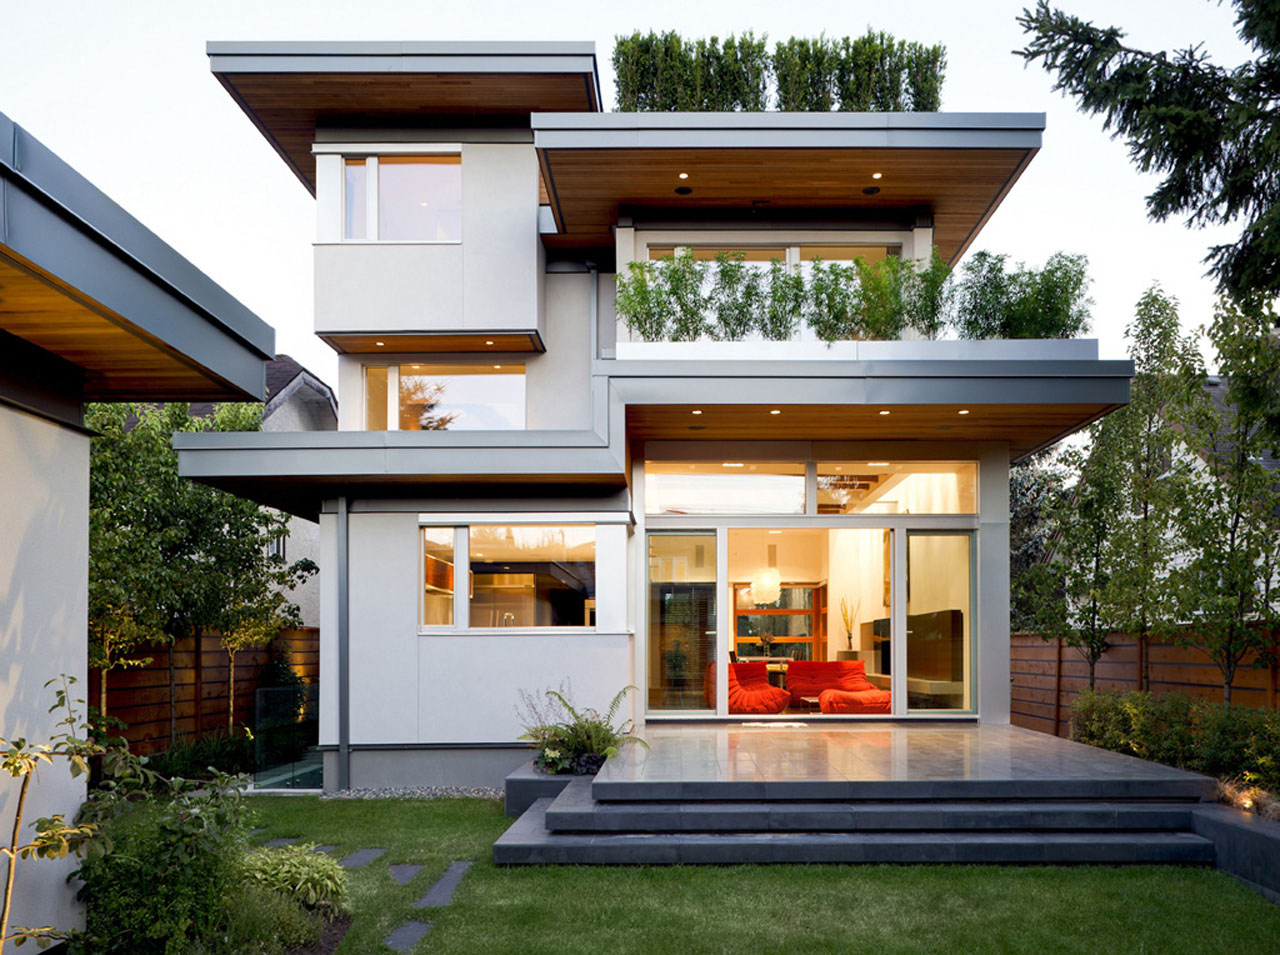 Sustainable Home Design In Vancouver. Sustainable Home Design In Vancouver   iDesignArch   Interior